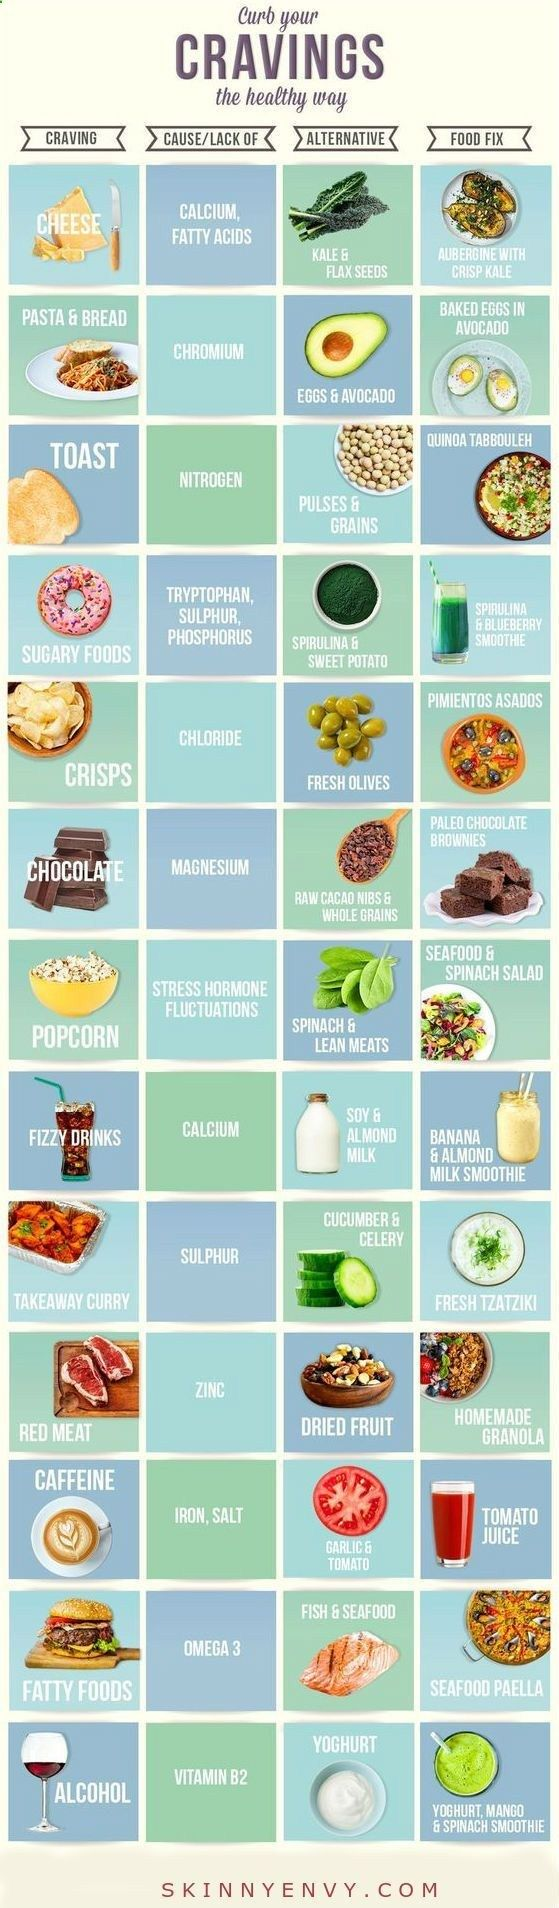 Curb Your Cravings the Healthy Way Try these healthy & natural appetite suppressants to help you achieve your weight loss goals #weightloss #Food #Health